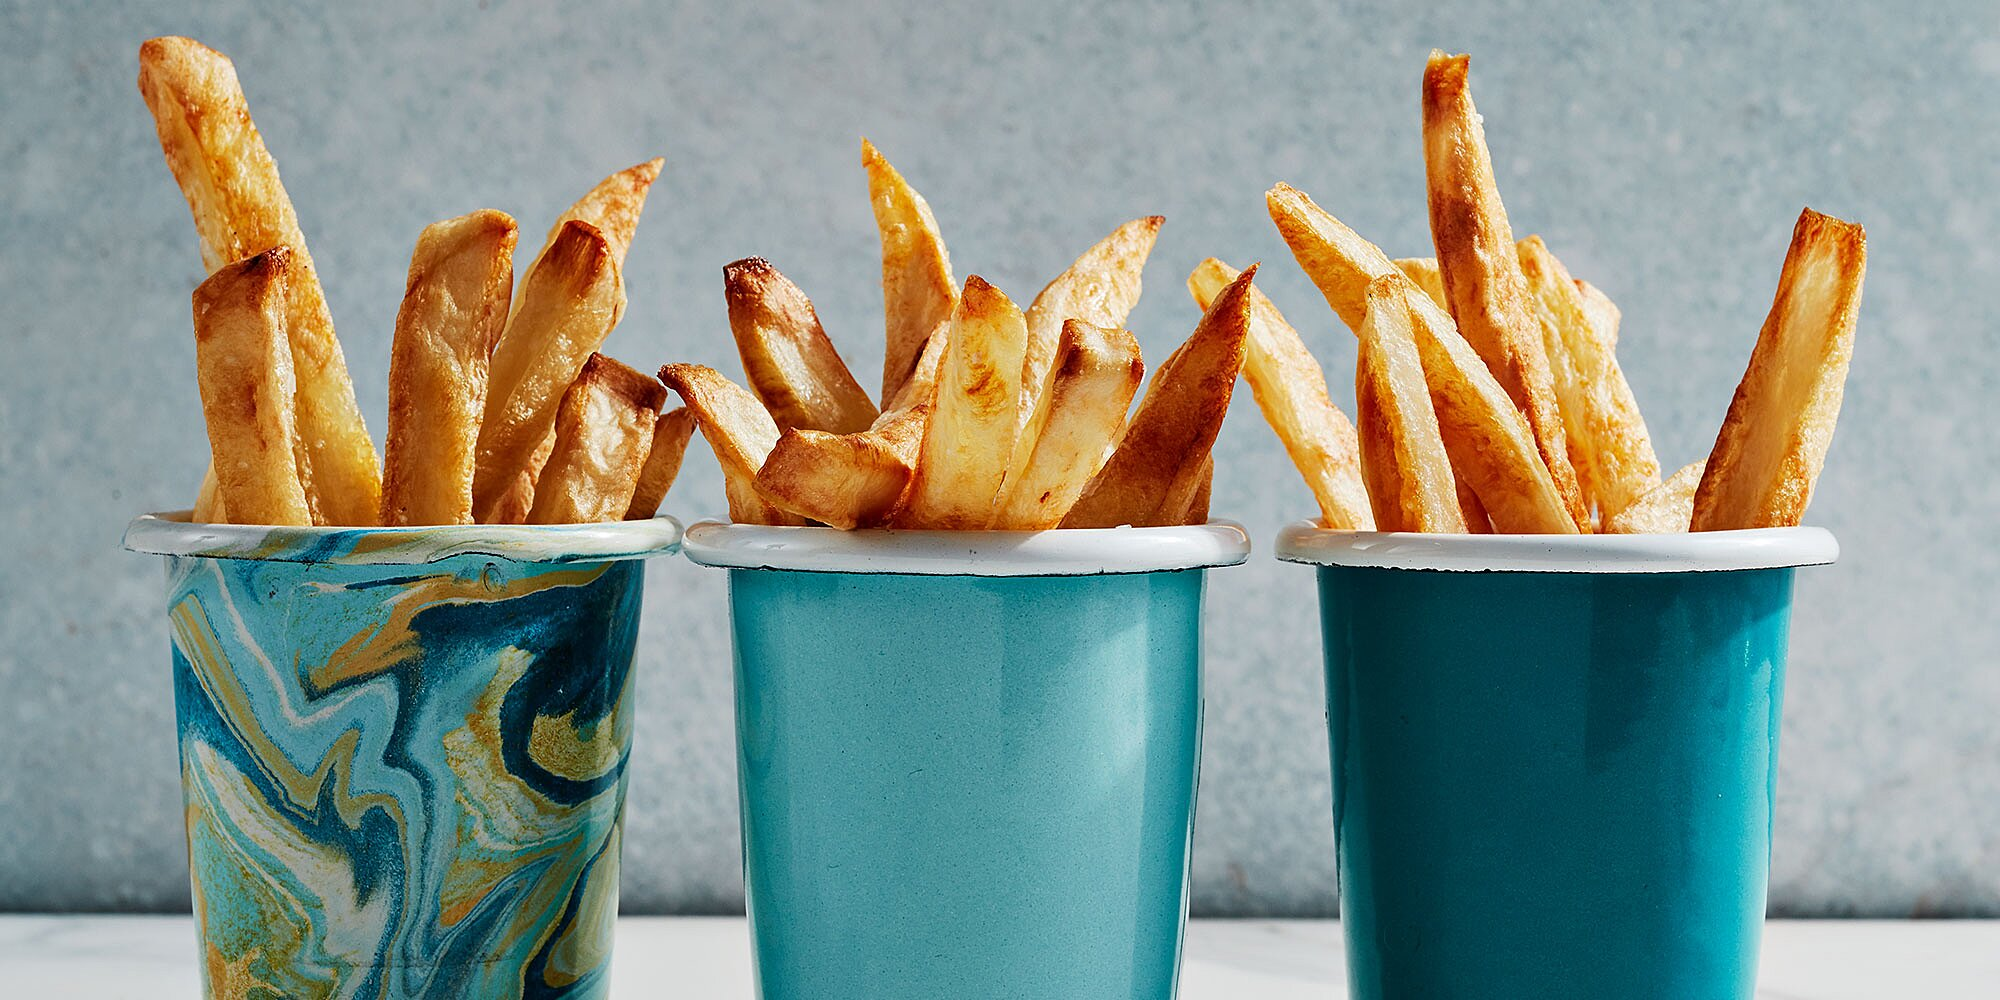 Crispy Oven-Baked Fries